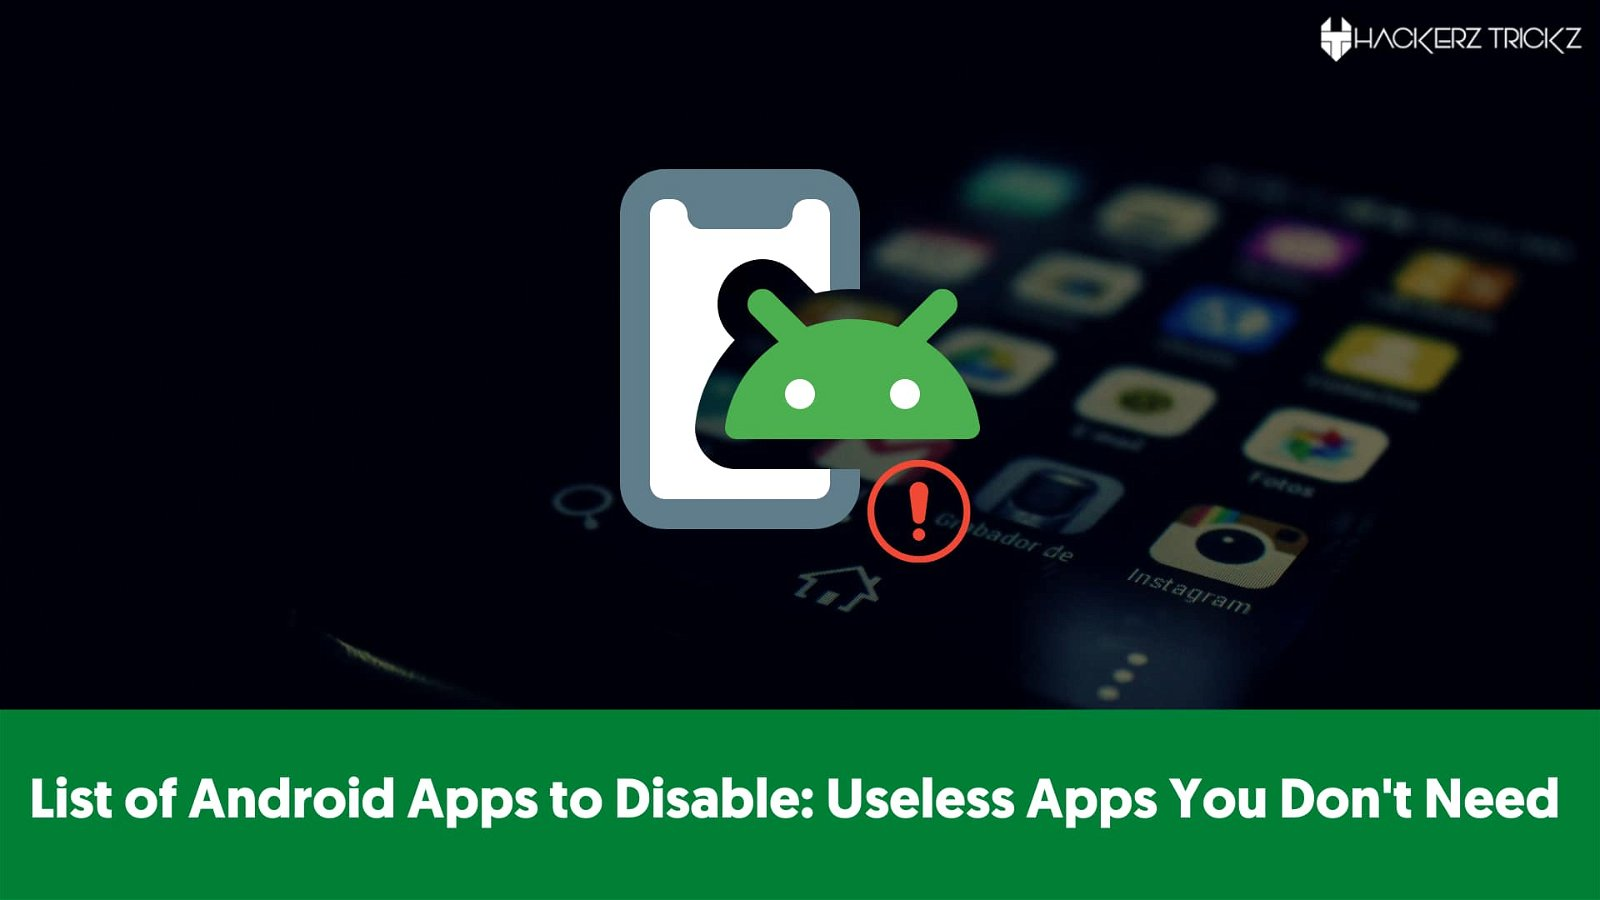 List of Android Apps to Disable Useless Apps You Don't Need